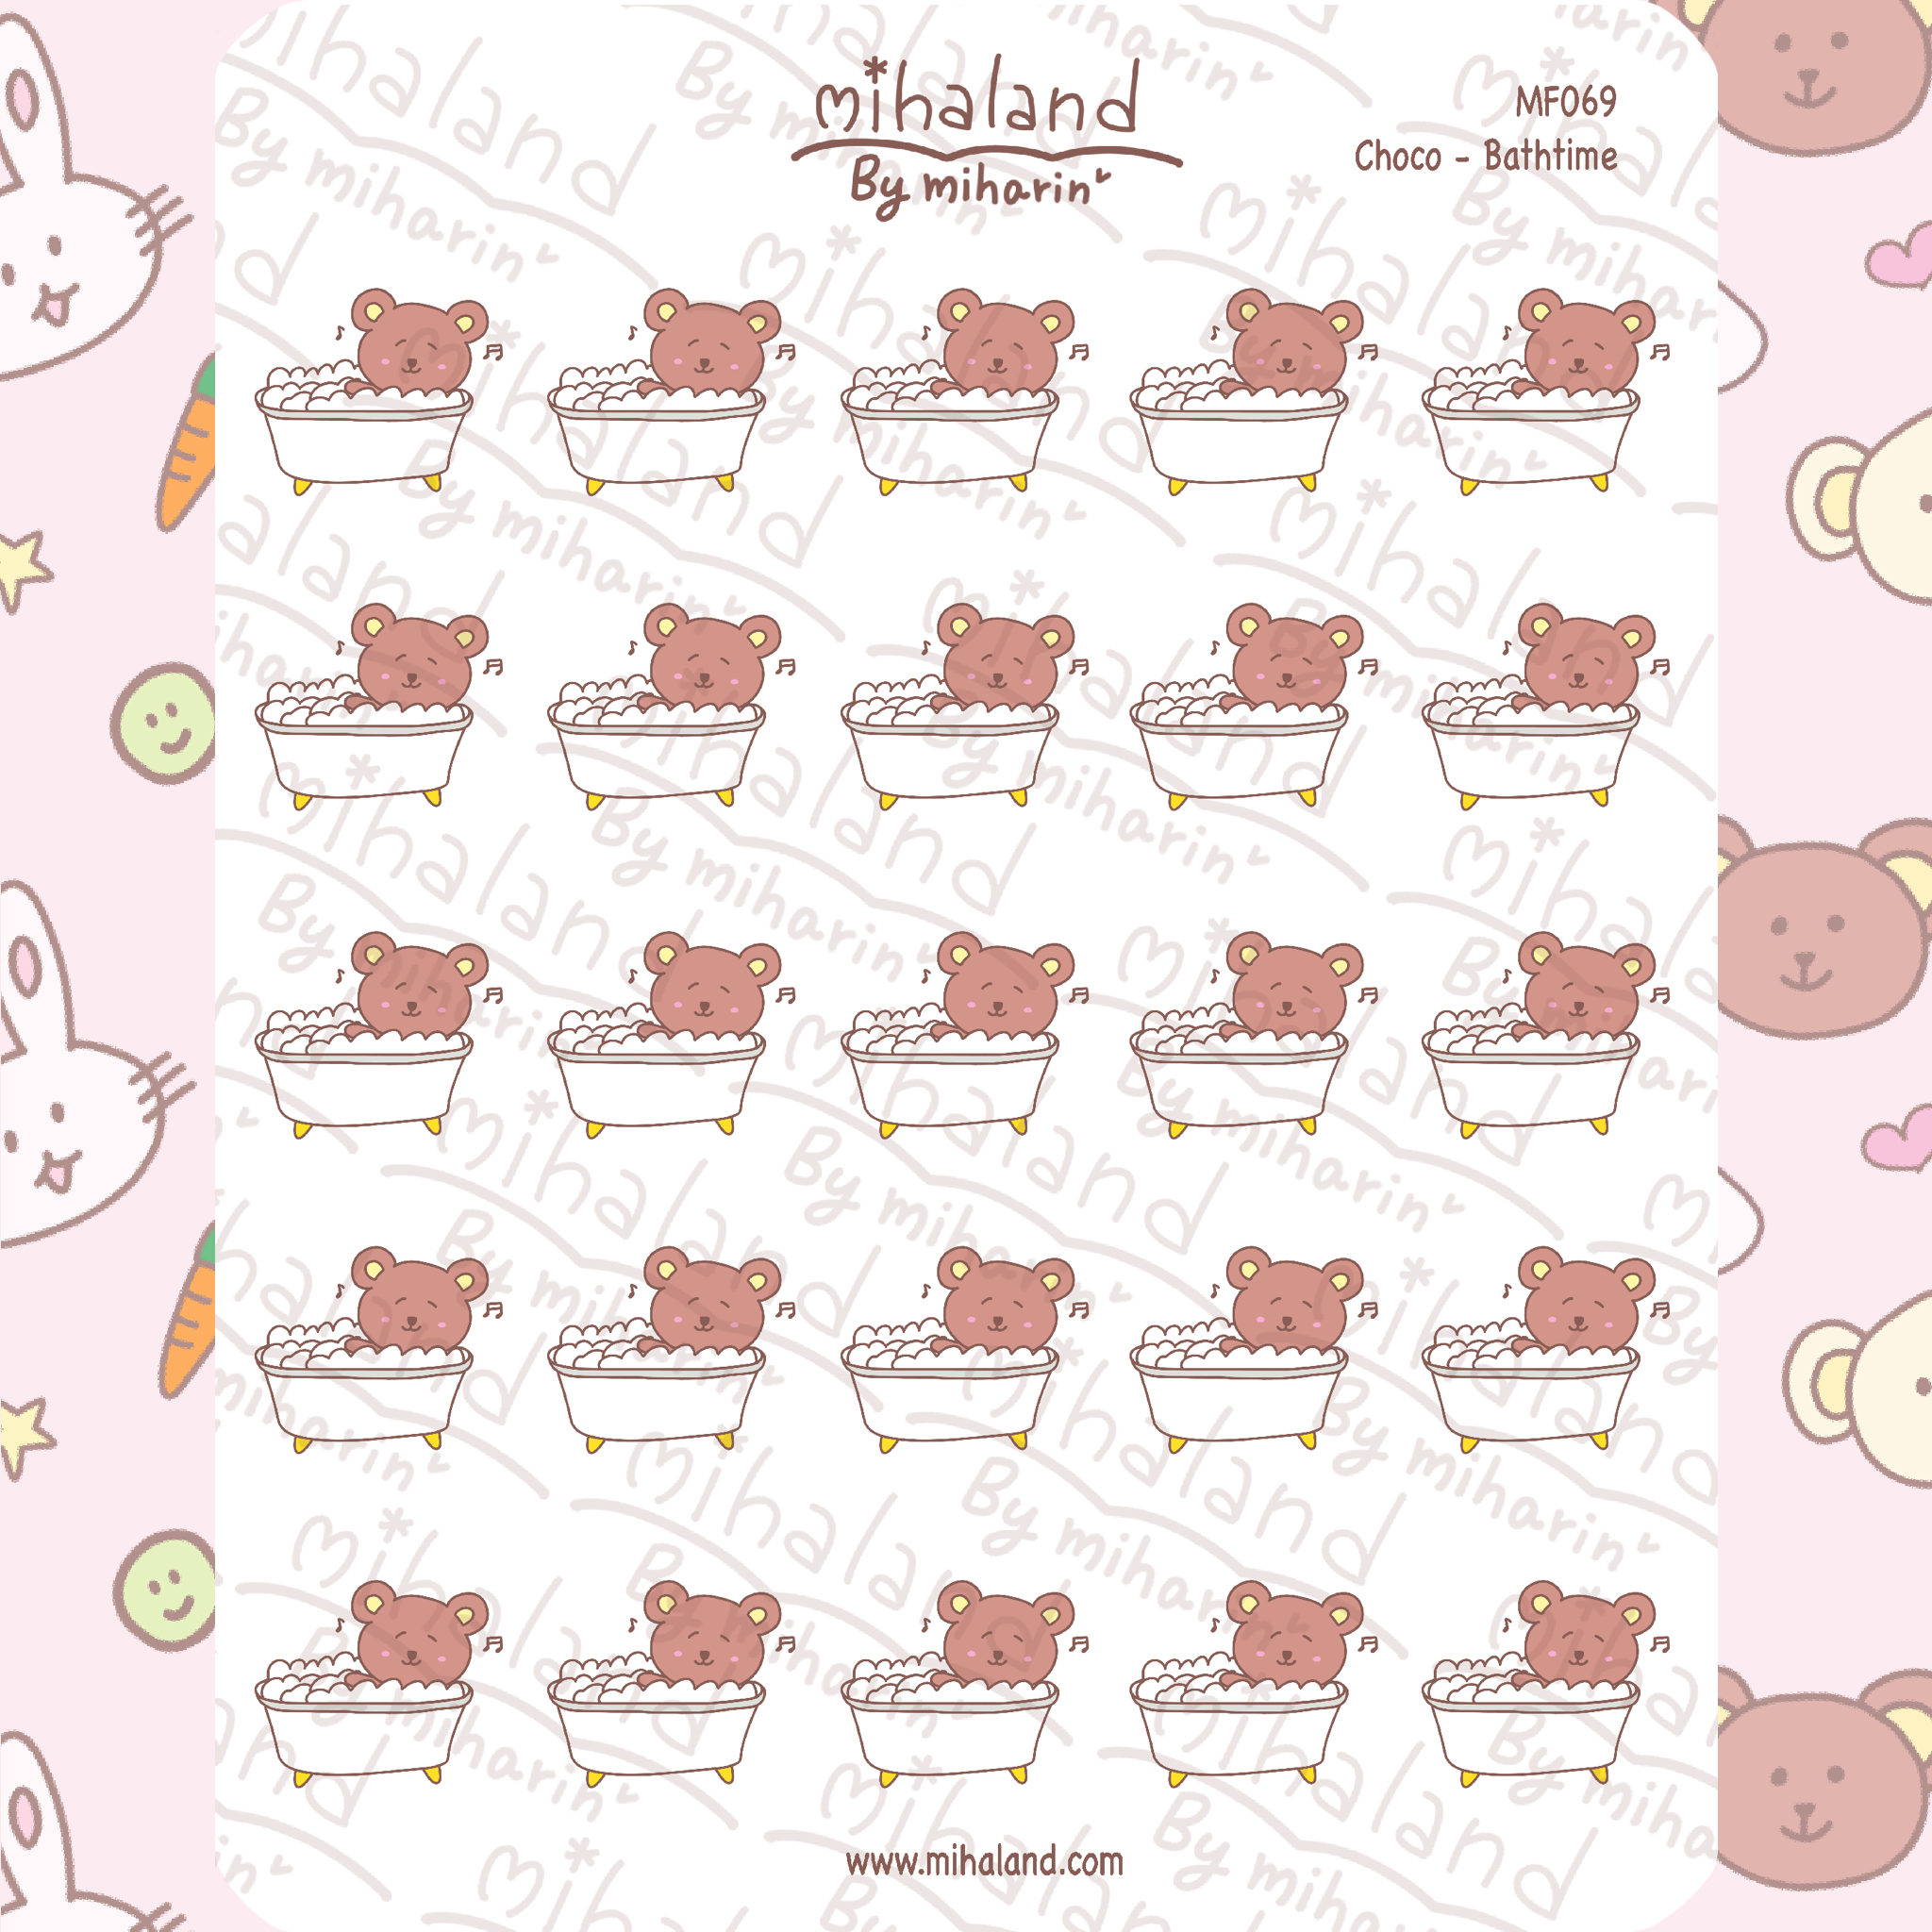 Choco - Bathtime Planner Stickers (MF069)